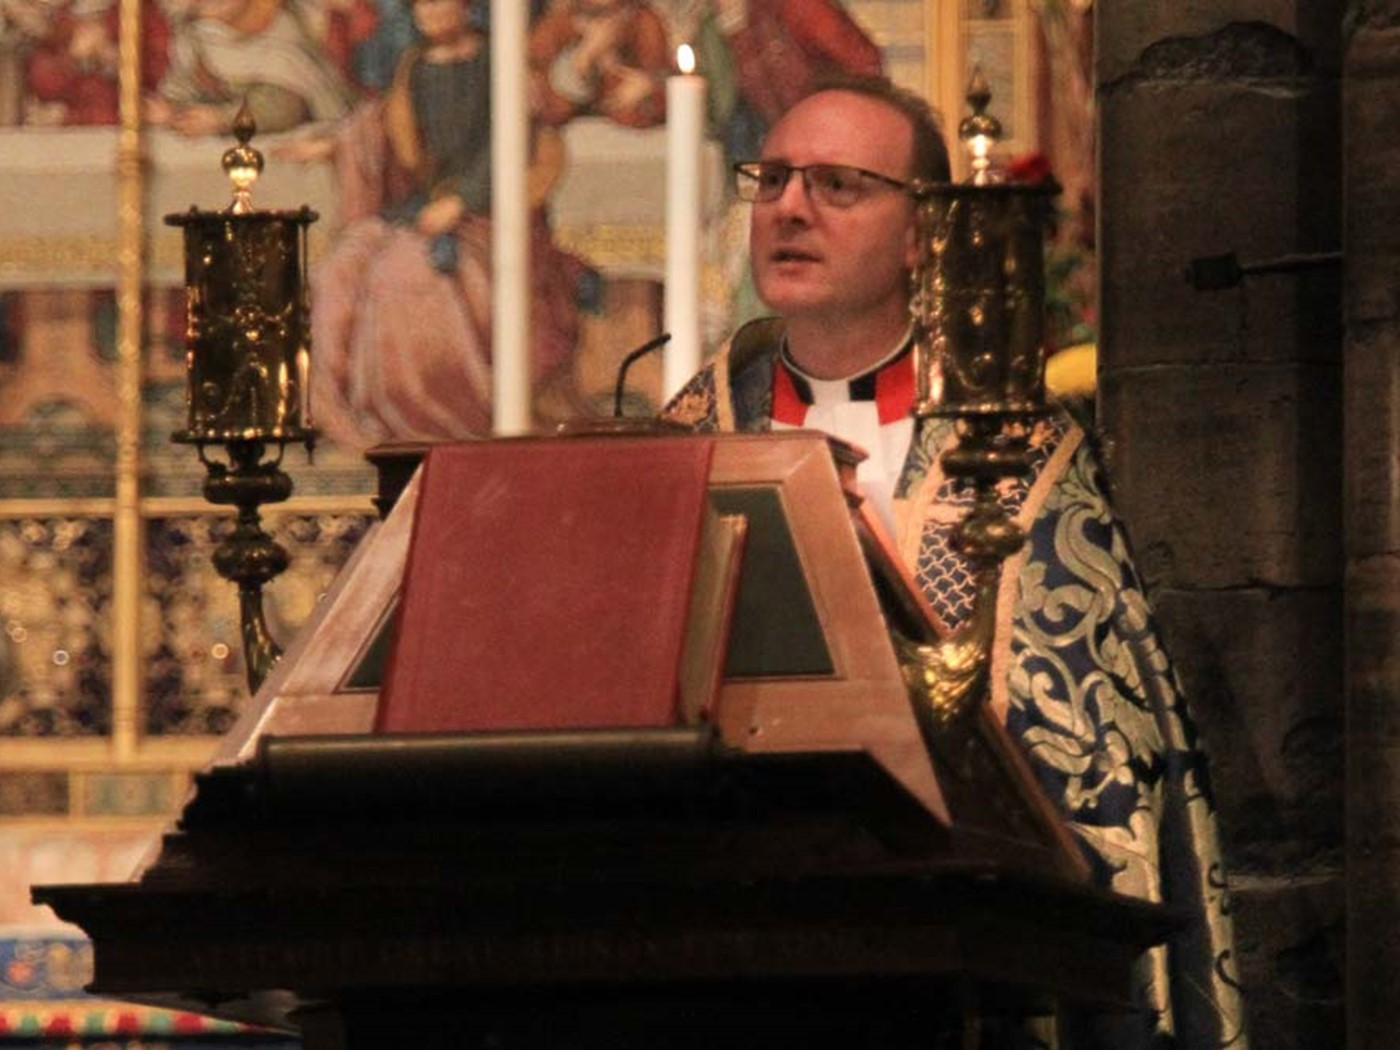 The Reverend Anthony Ball, Canon in Residence, and Co-Chair, The Council of Christians and Jews (Central London Branch), reads St Matthew 5: 1–10